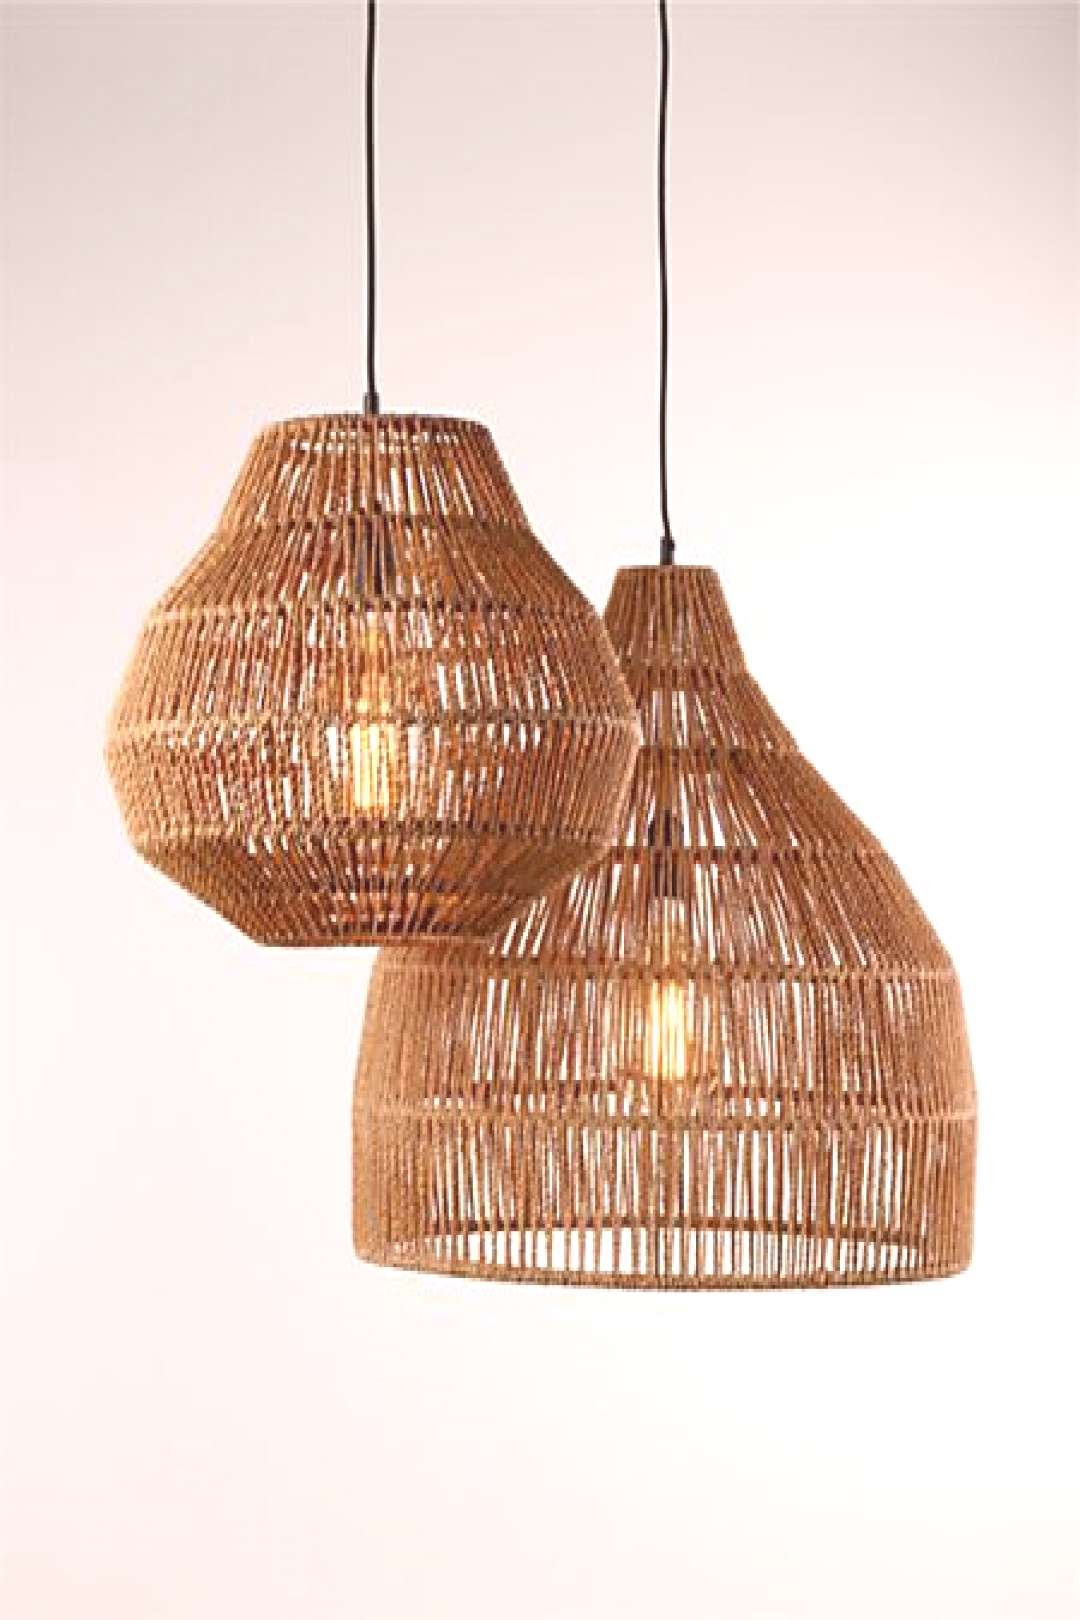 Cabo Small Woven Pendant Light + Reviews | Crate and Barrel Cabo Small Woven Pendant Light + Review